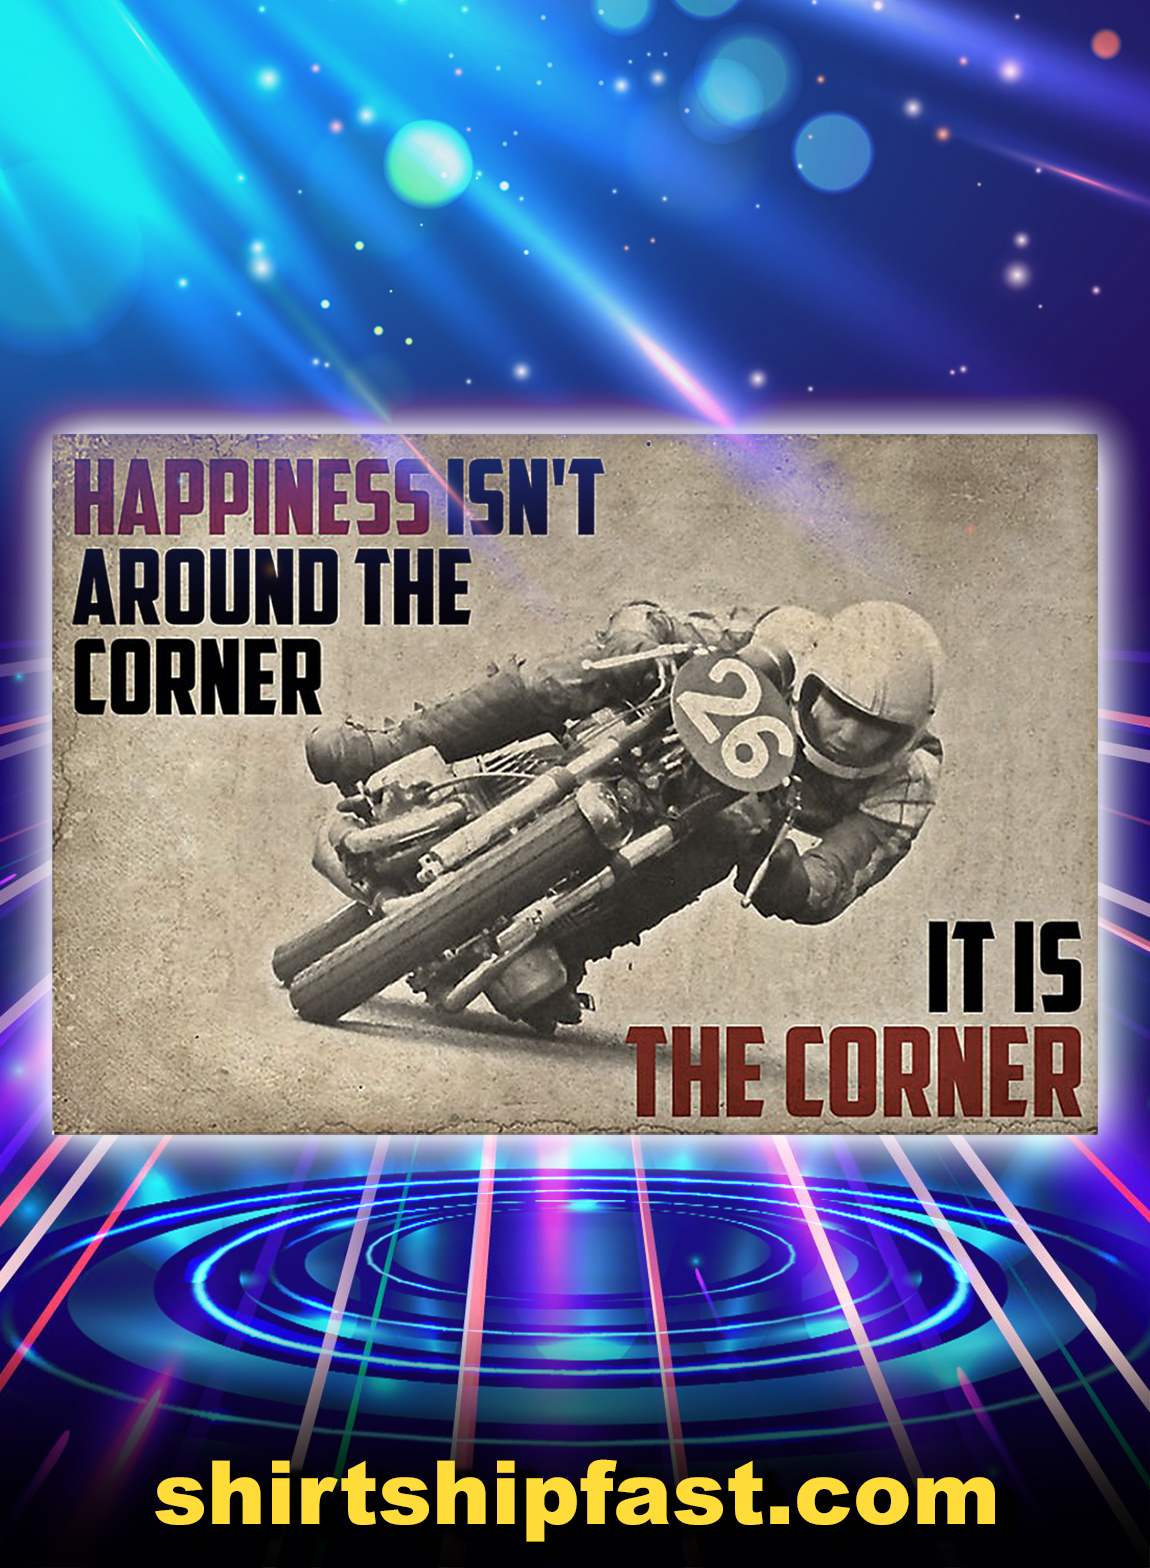 Motorcycle happiness isn't around the corner It is the corner poster - A3